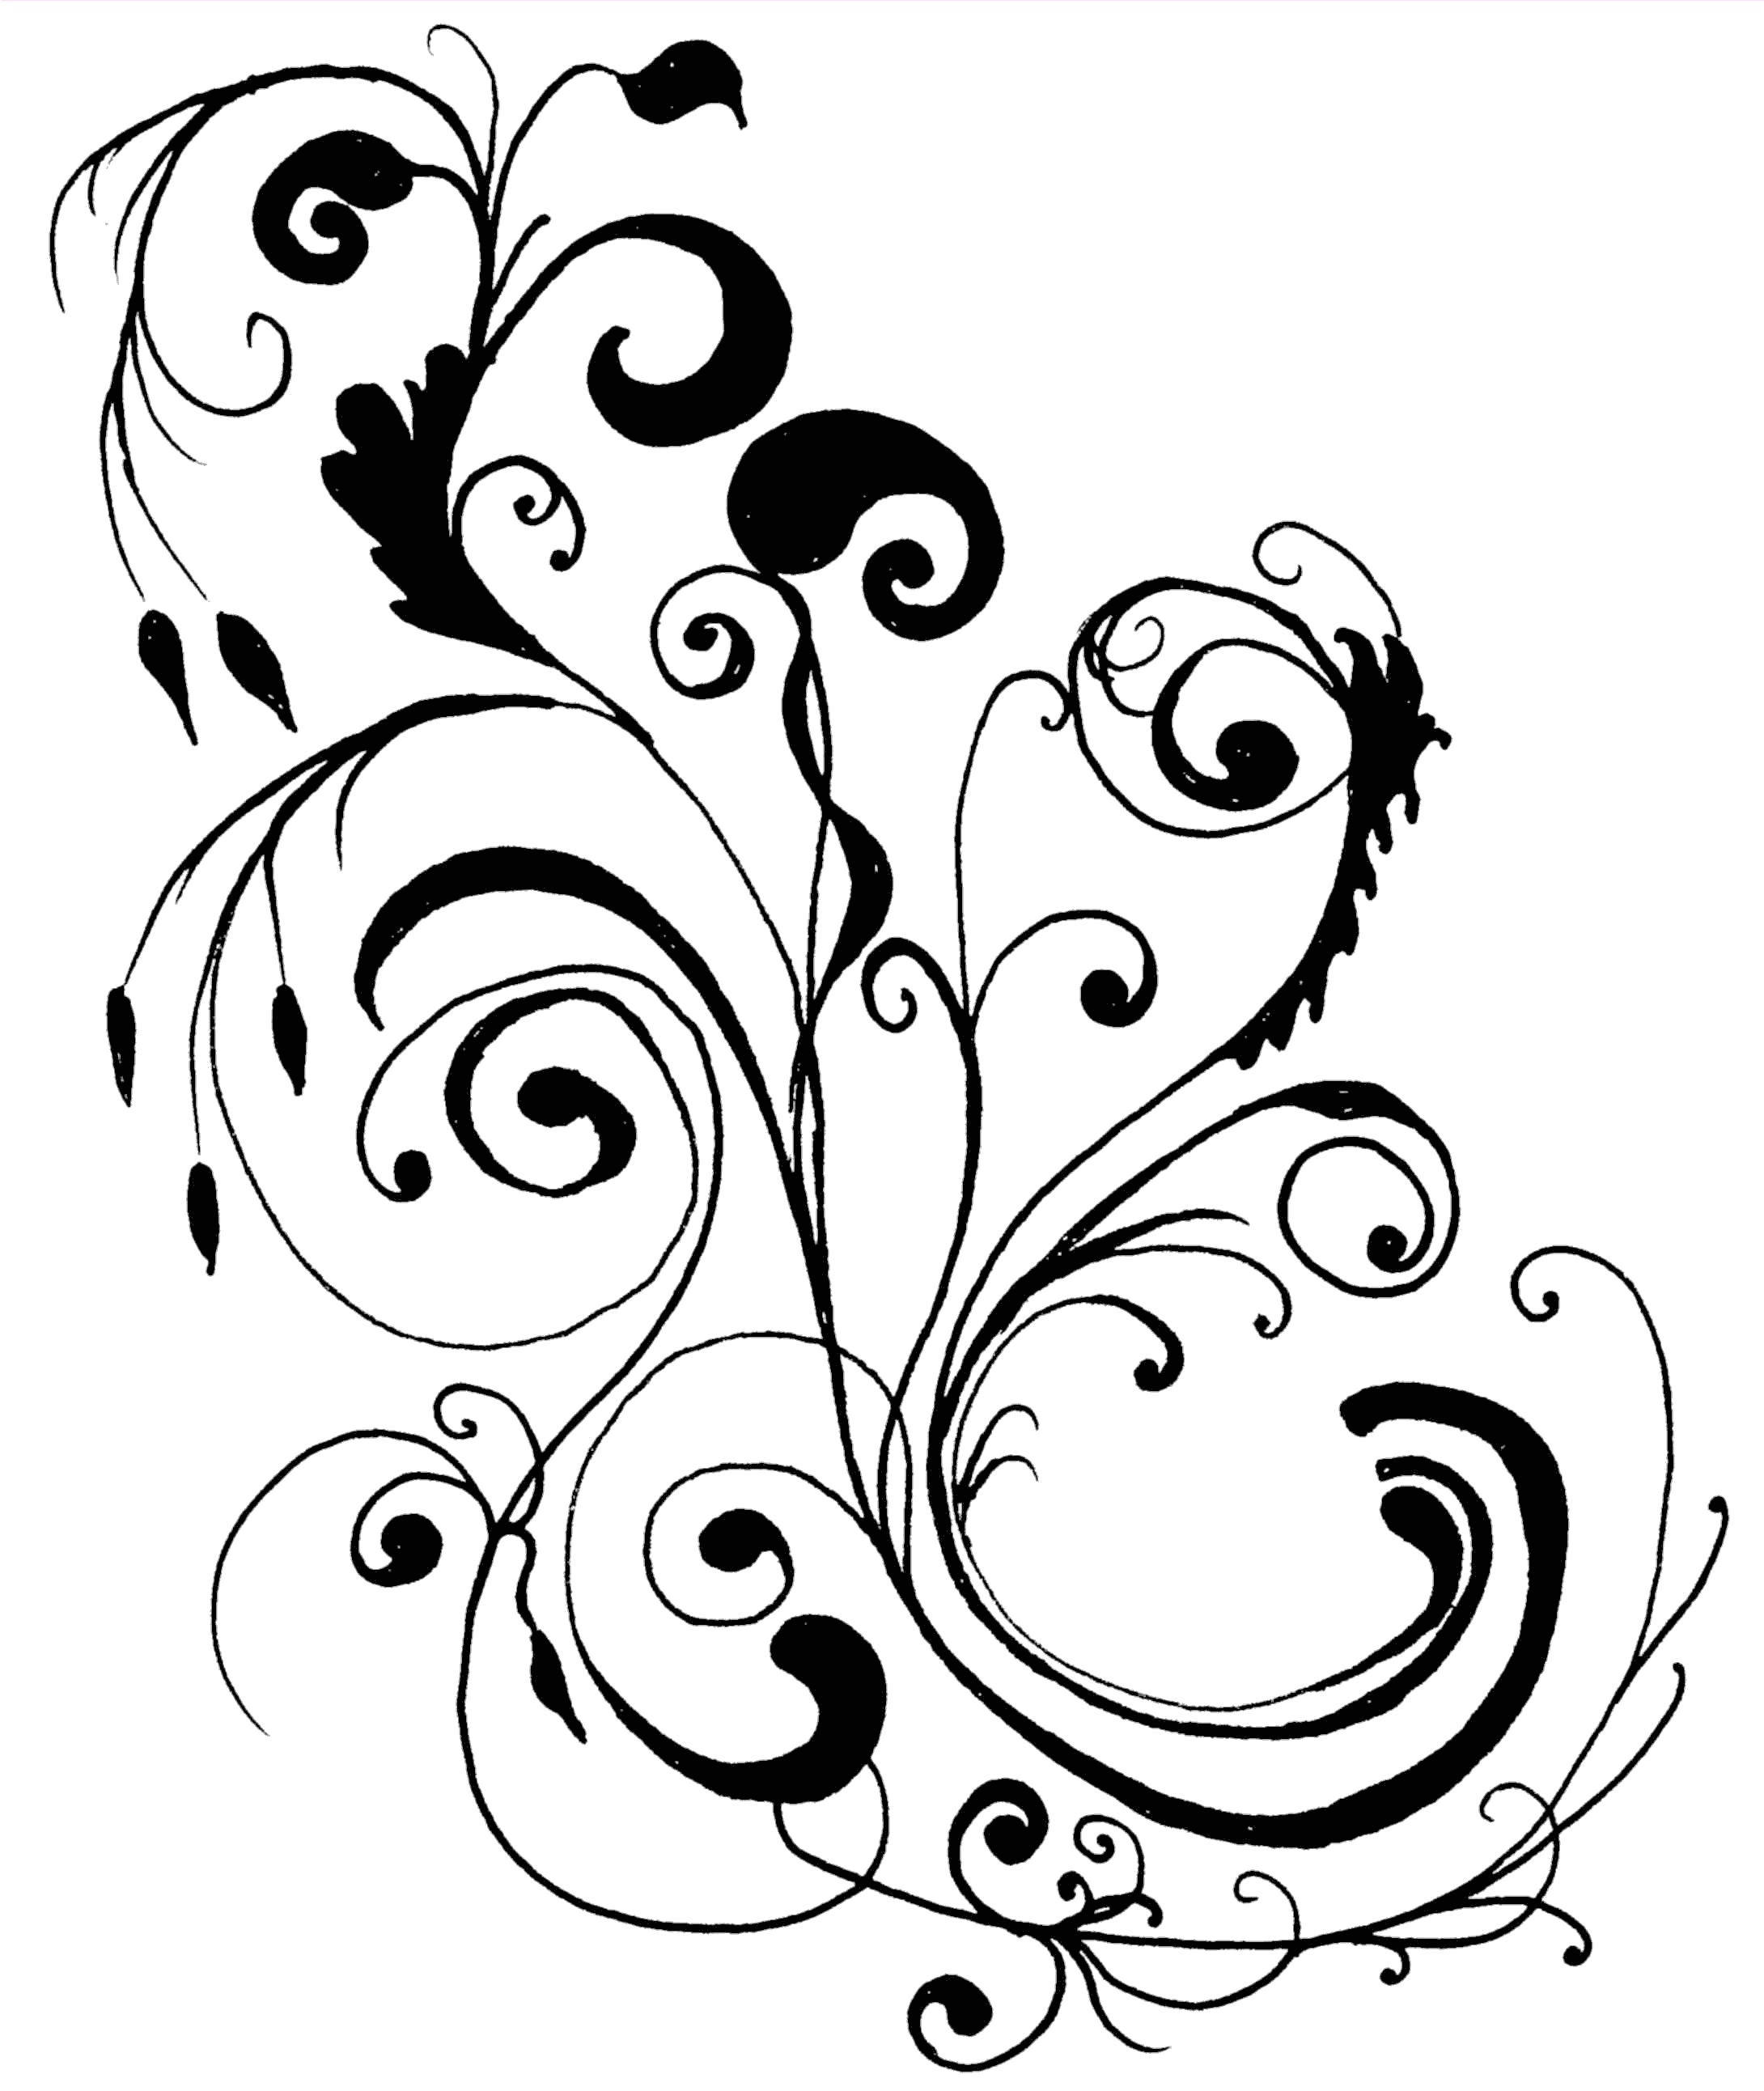 2013 Vector Graphics Clipart Free Cool G-2013 Vector Graphics Clipart Free Cool Graphic Designs Free Invoice-0